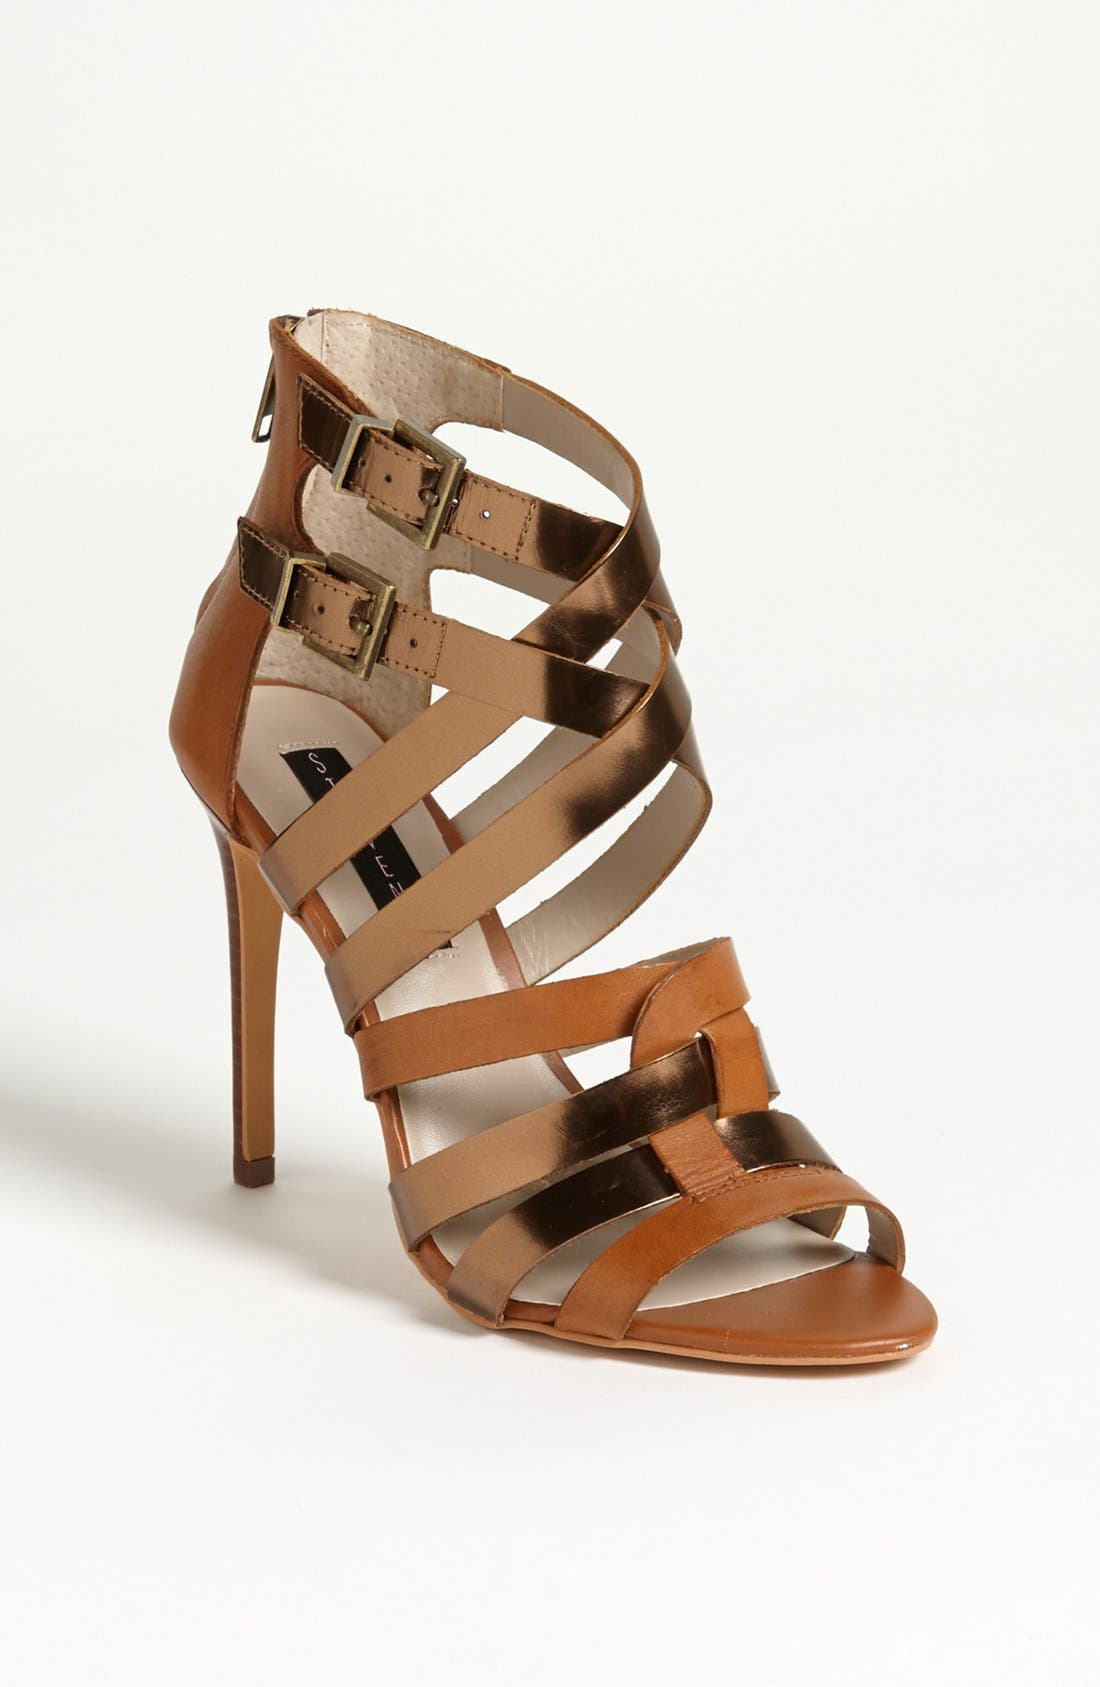 Alternate Image 1 Selected - Steven by Steve Madden 'Lively' Sandal